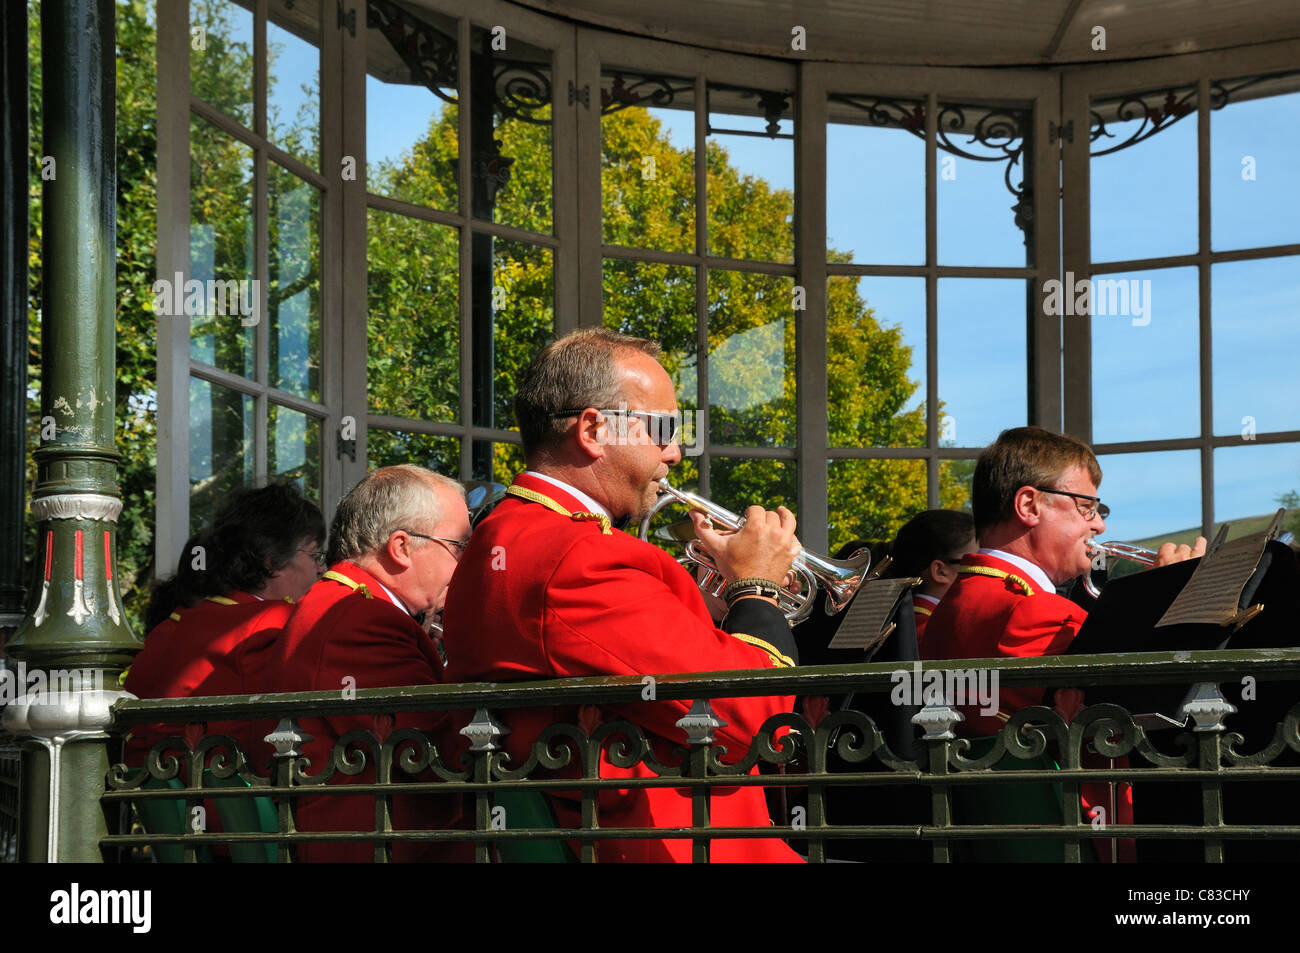 Brass band performing in Dartmouth bandstand, Devon, UK - Stock Image